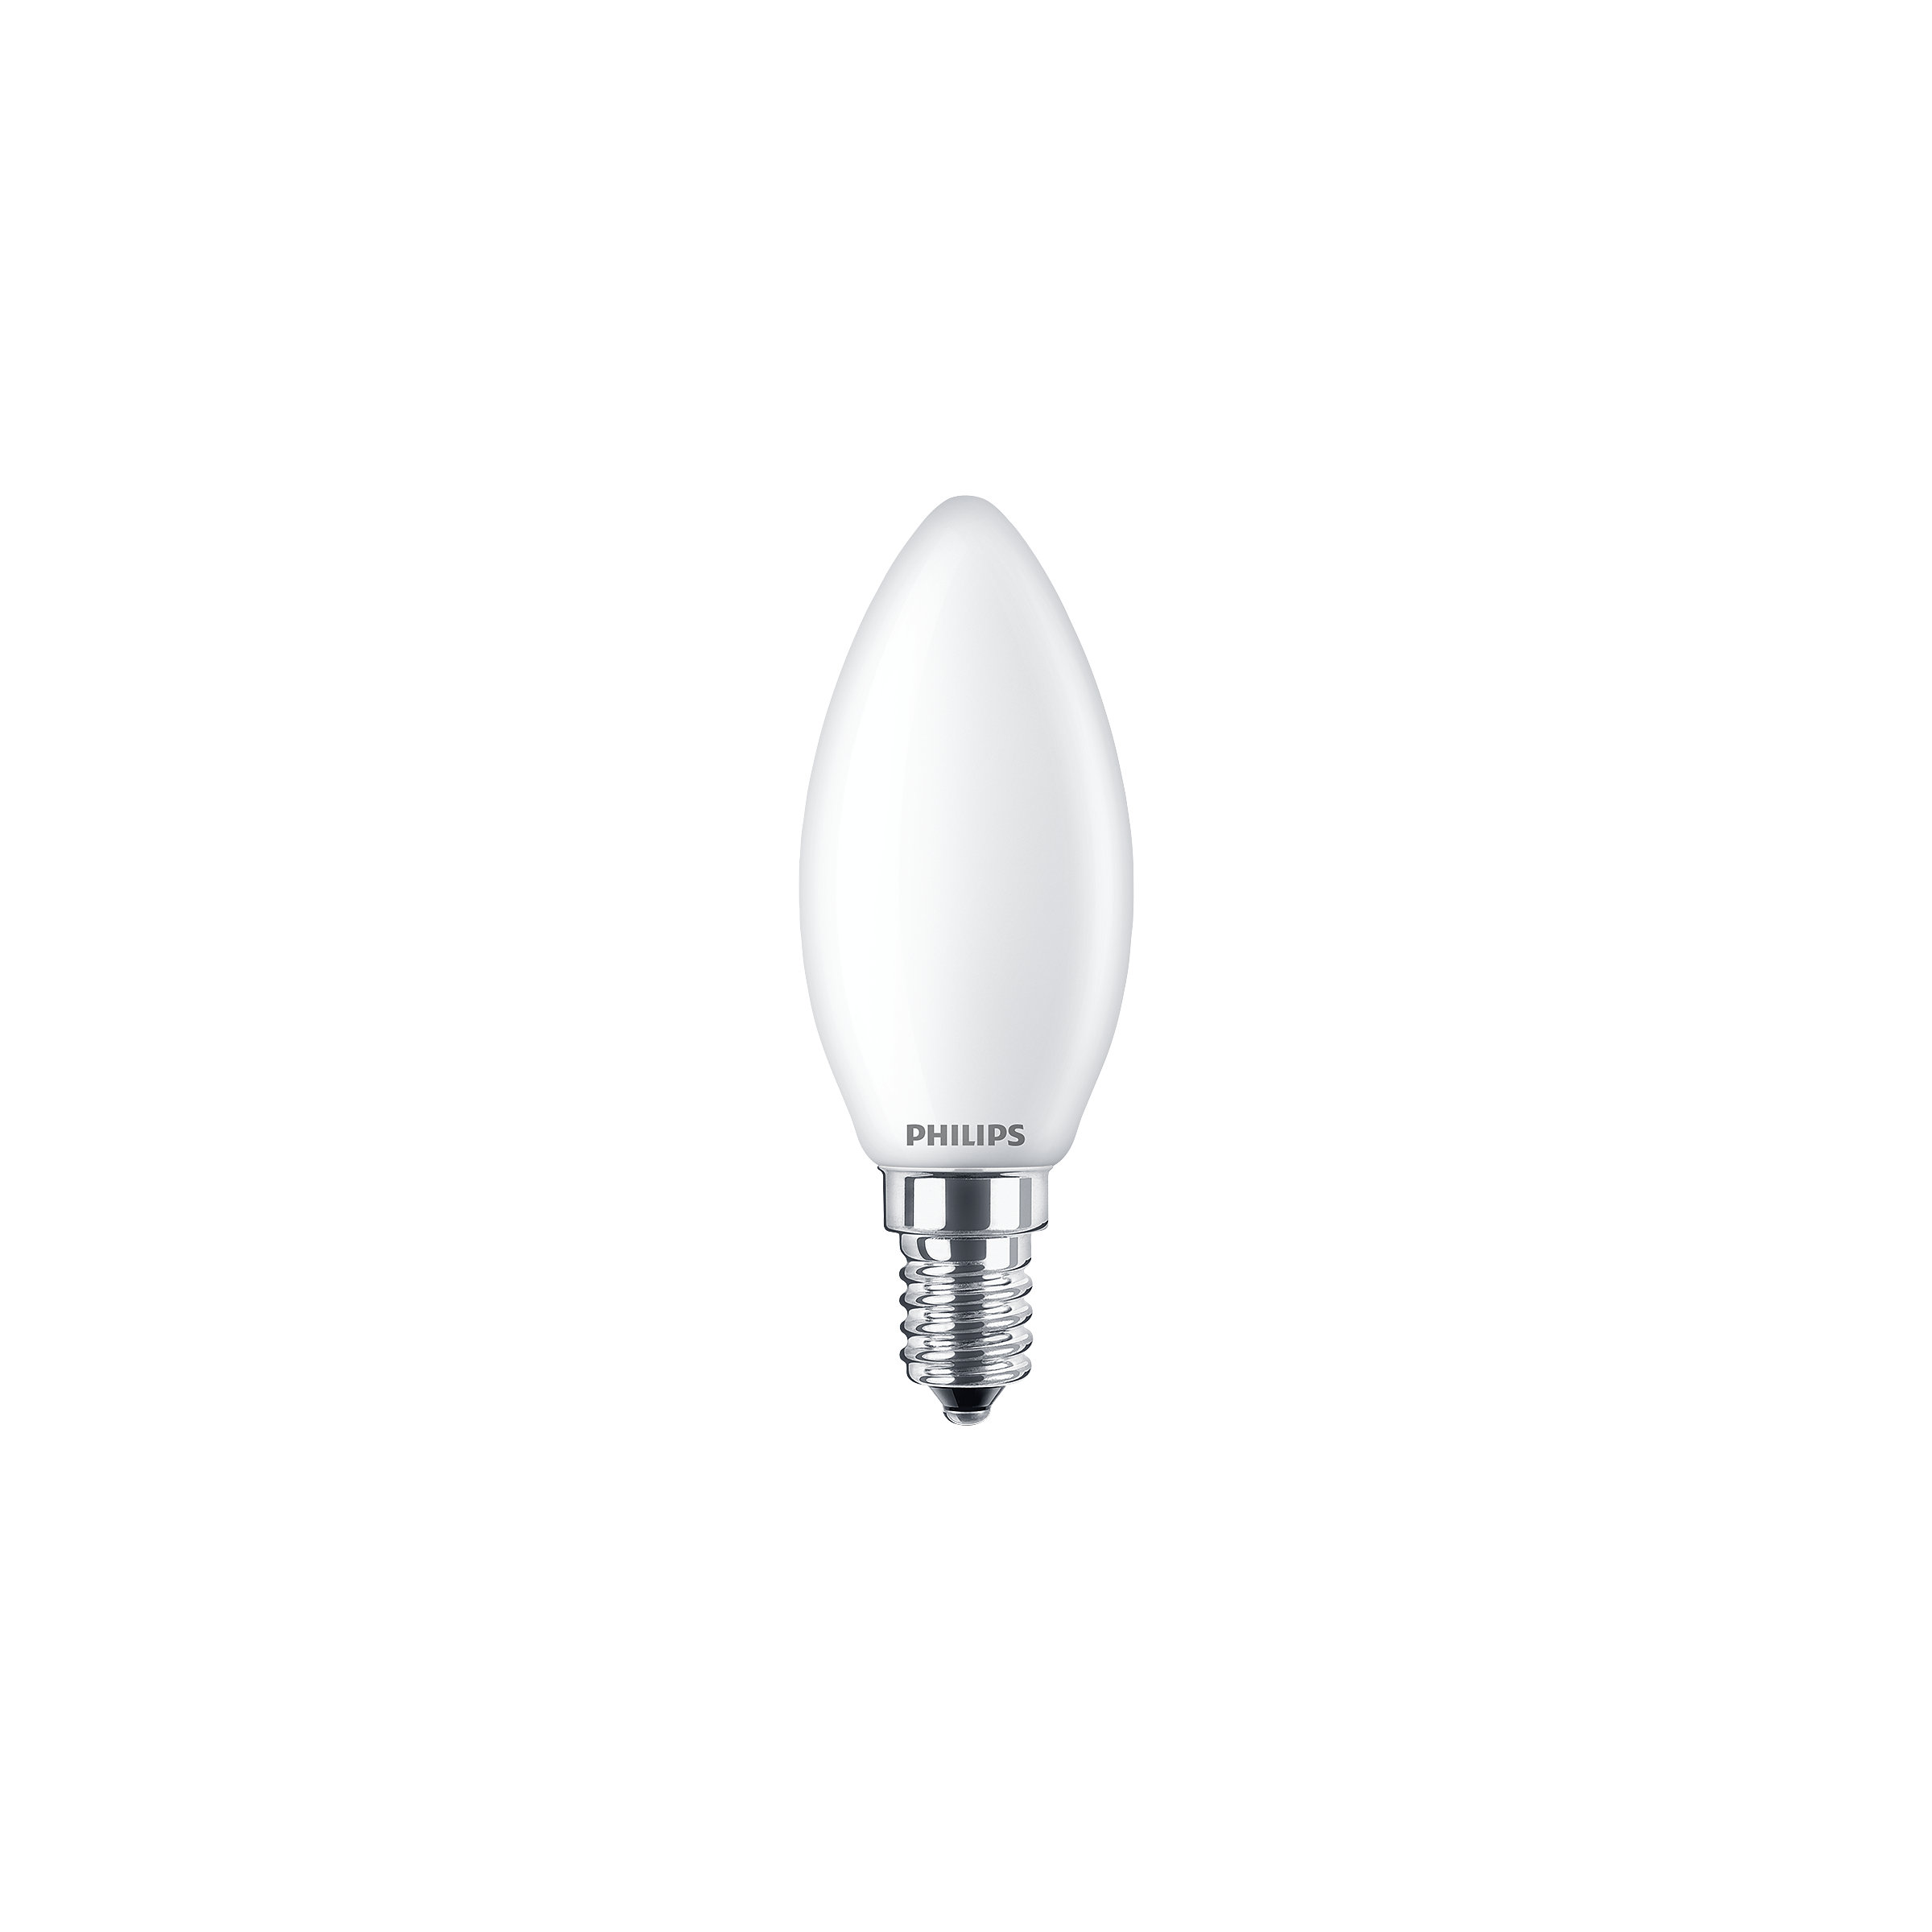 Philips Candle Led Leuchtmittel E14 Länge 97 Mm Warmweiß